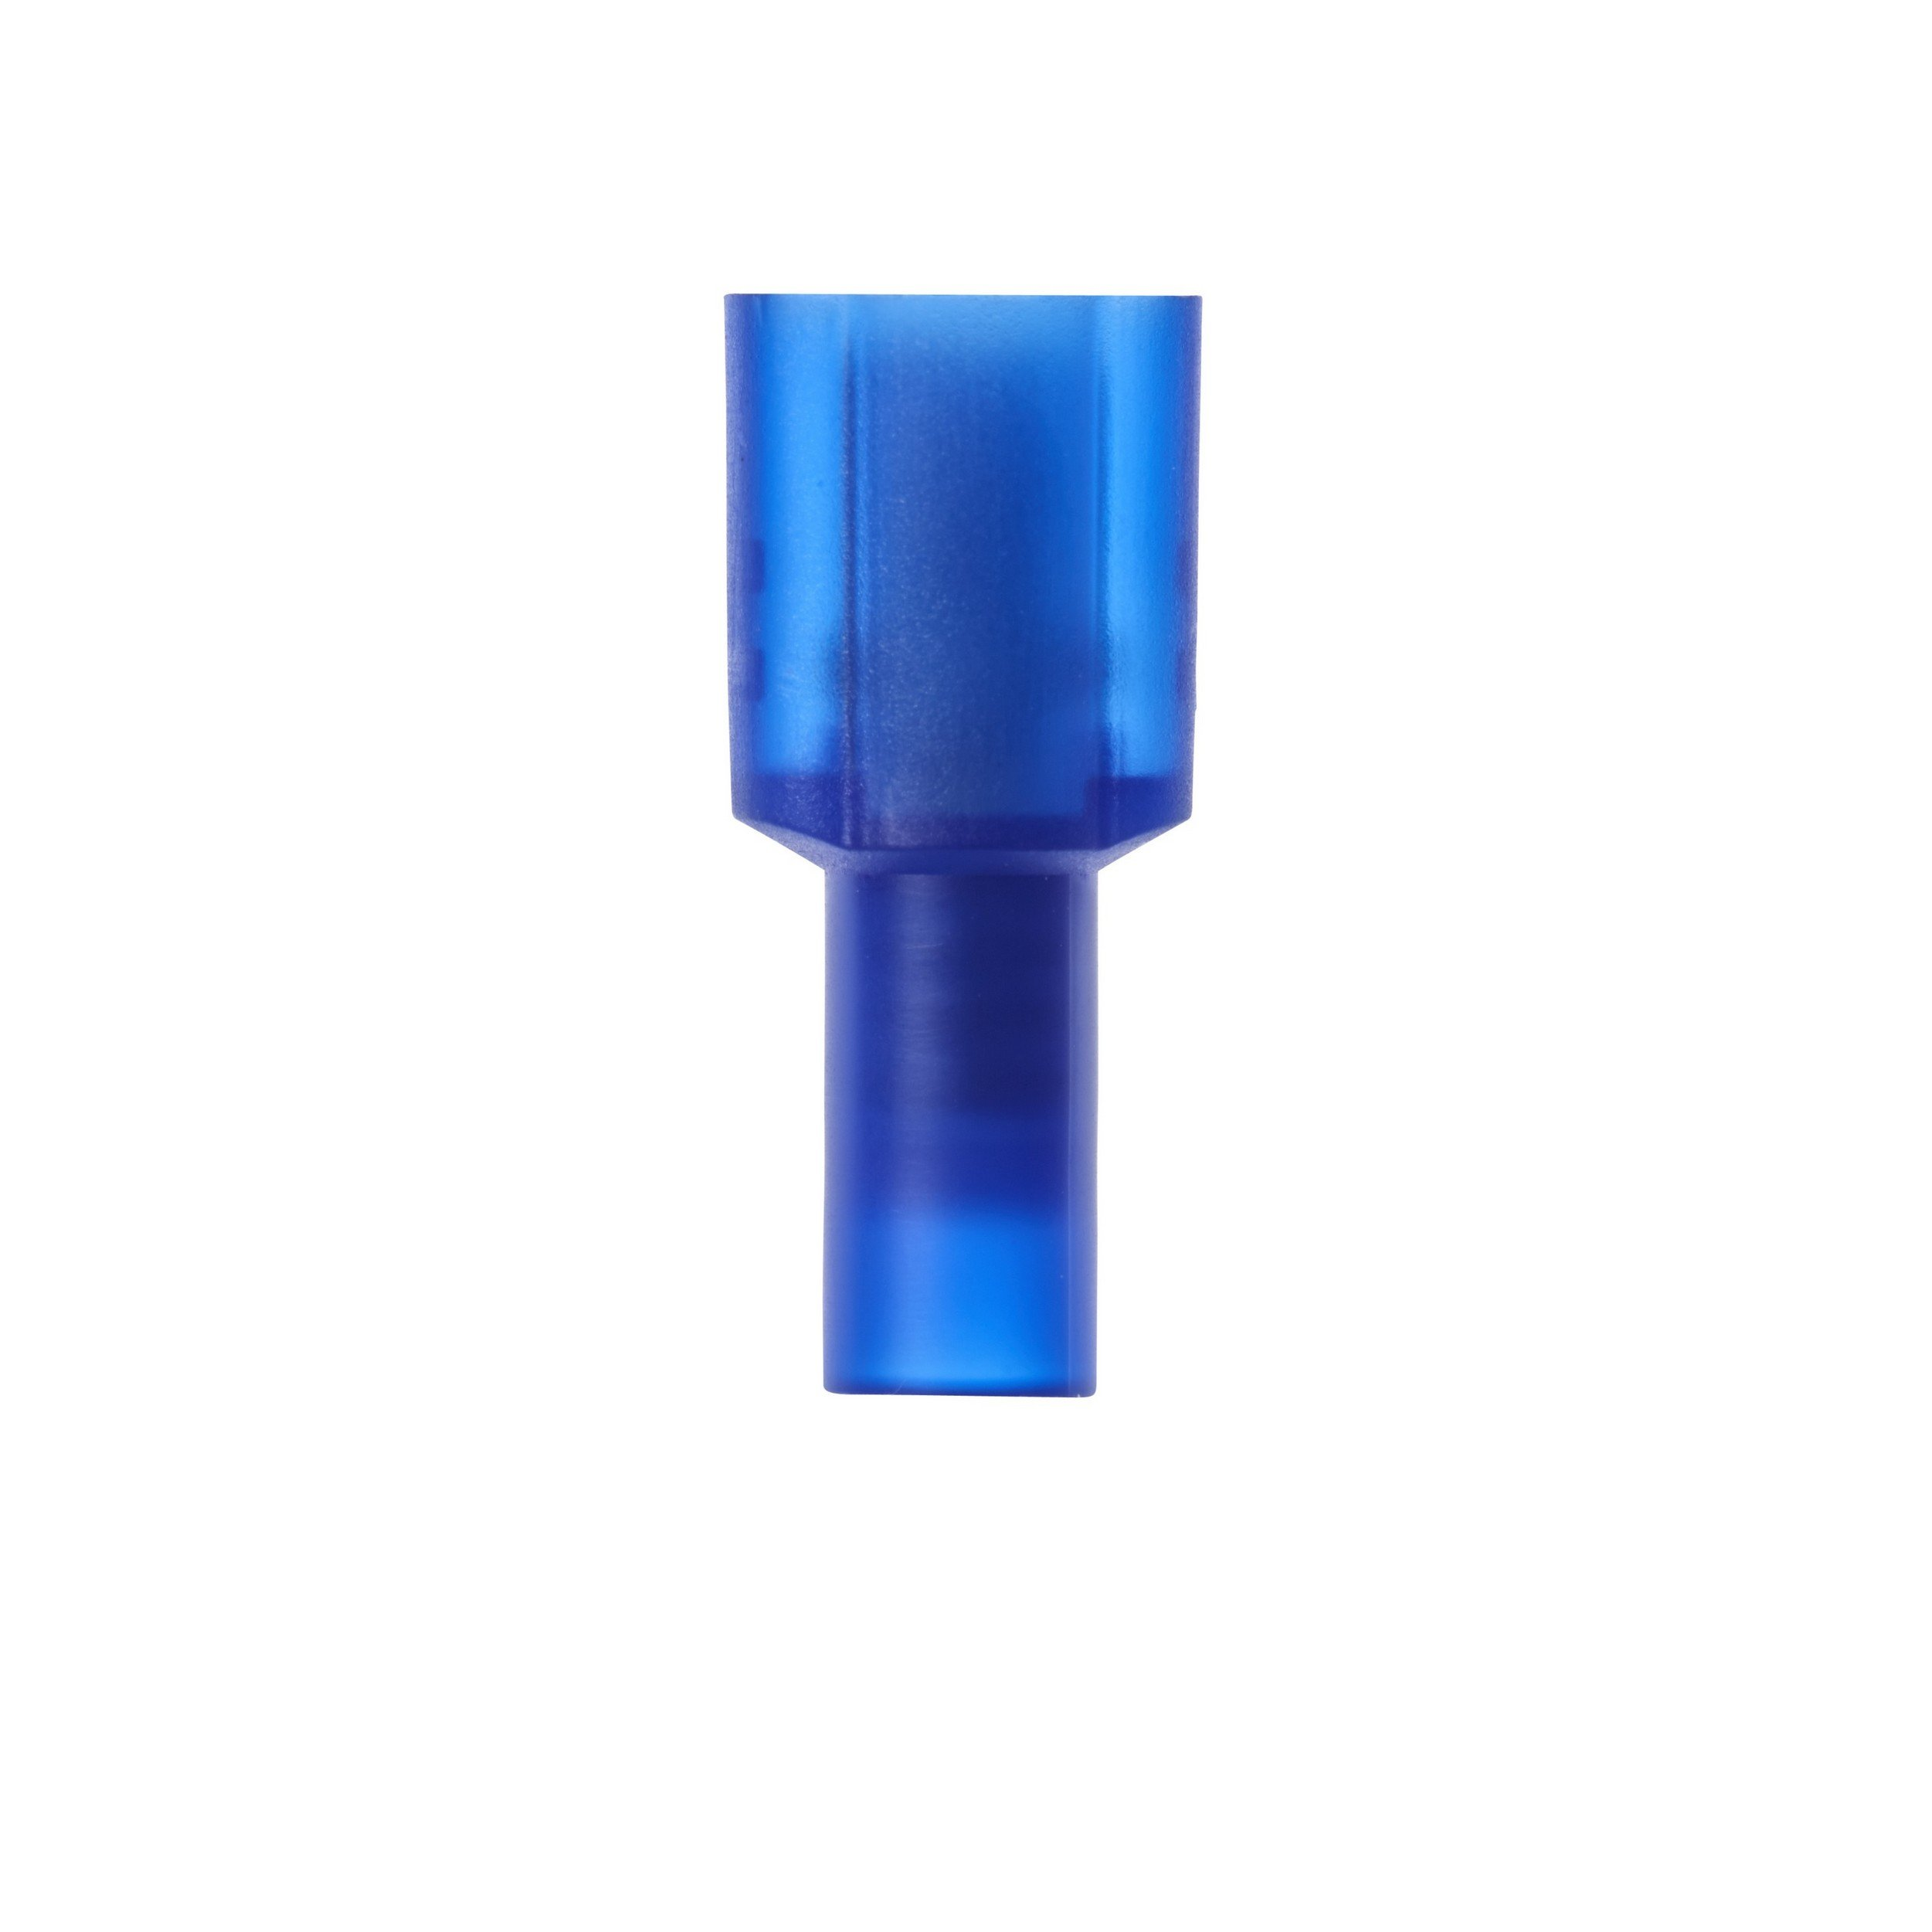 RES 0.001 OHM 1/% 2W 2512 WSL25121L000FEA18 Pack of 15